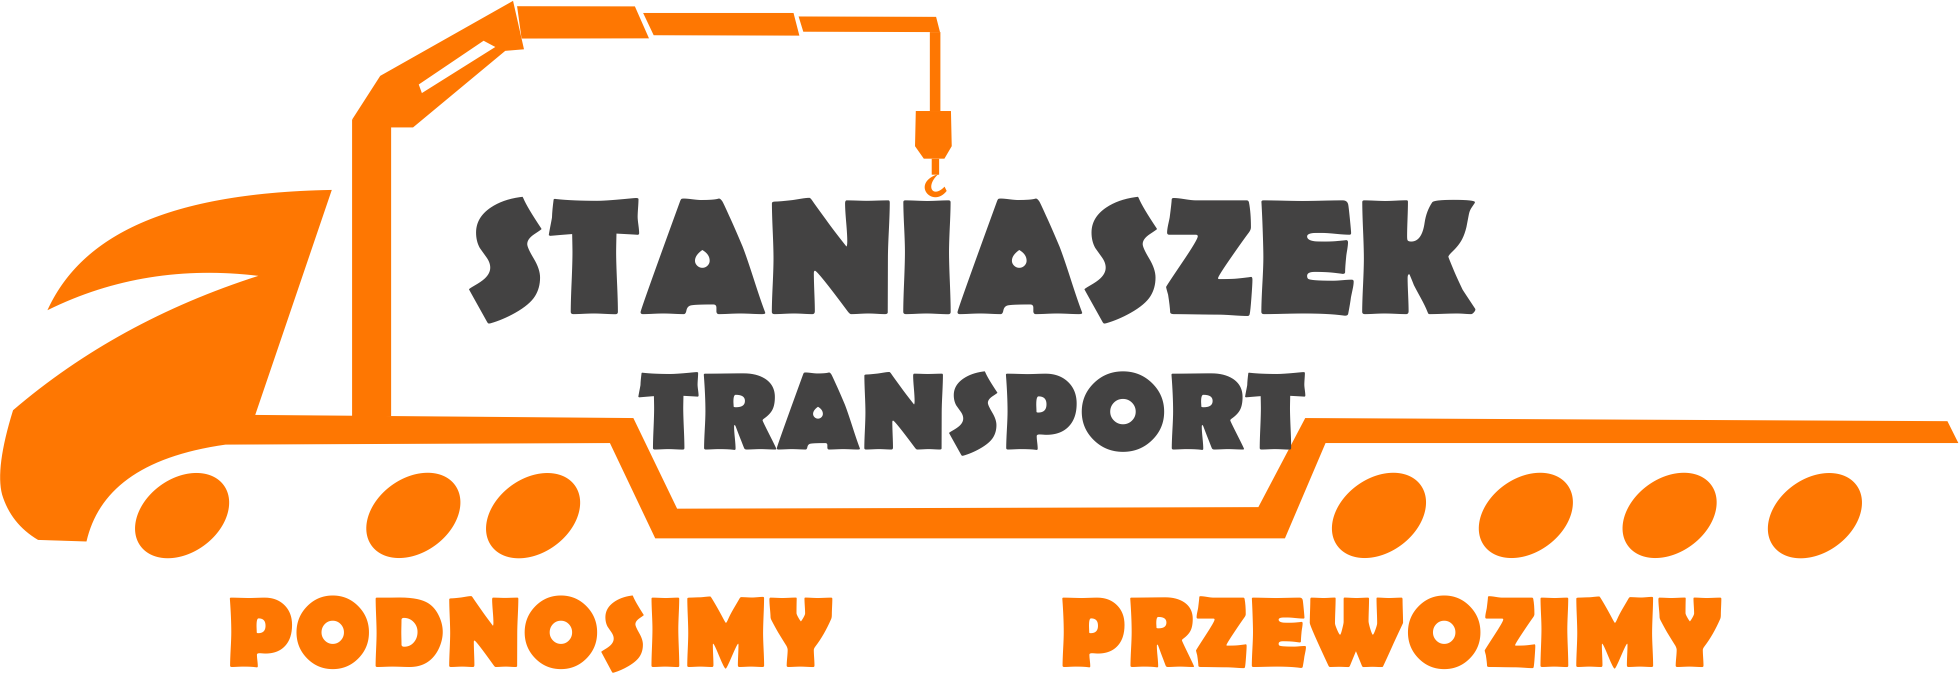 Staniaszek transport